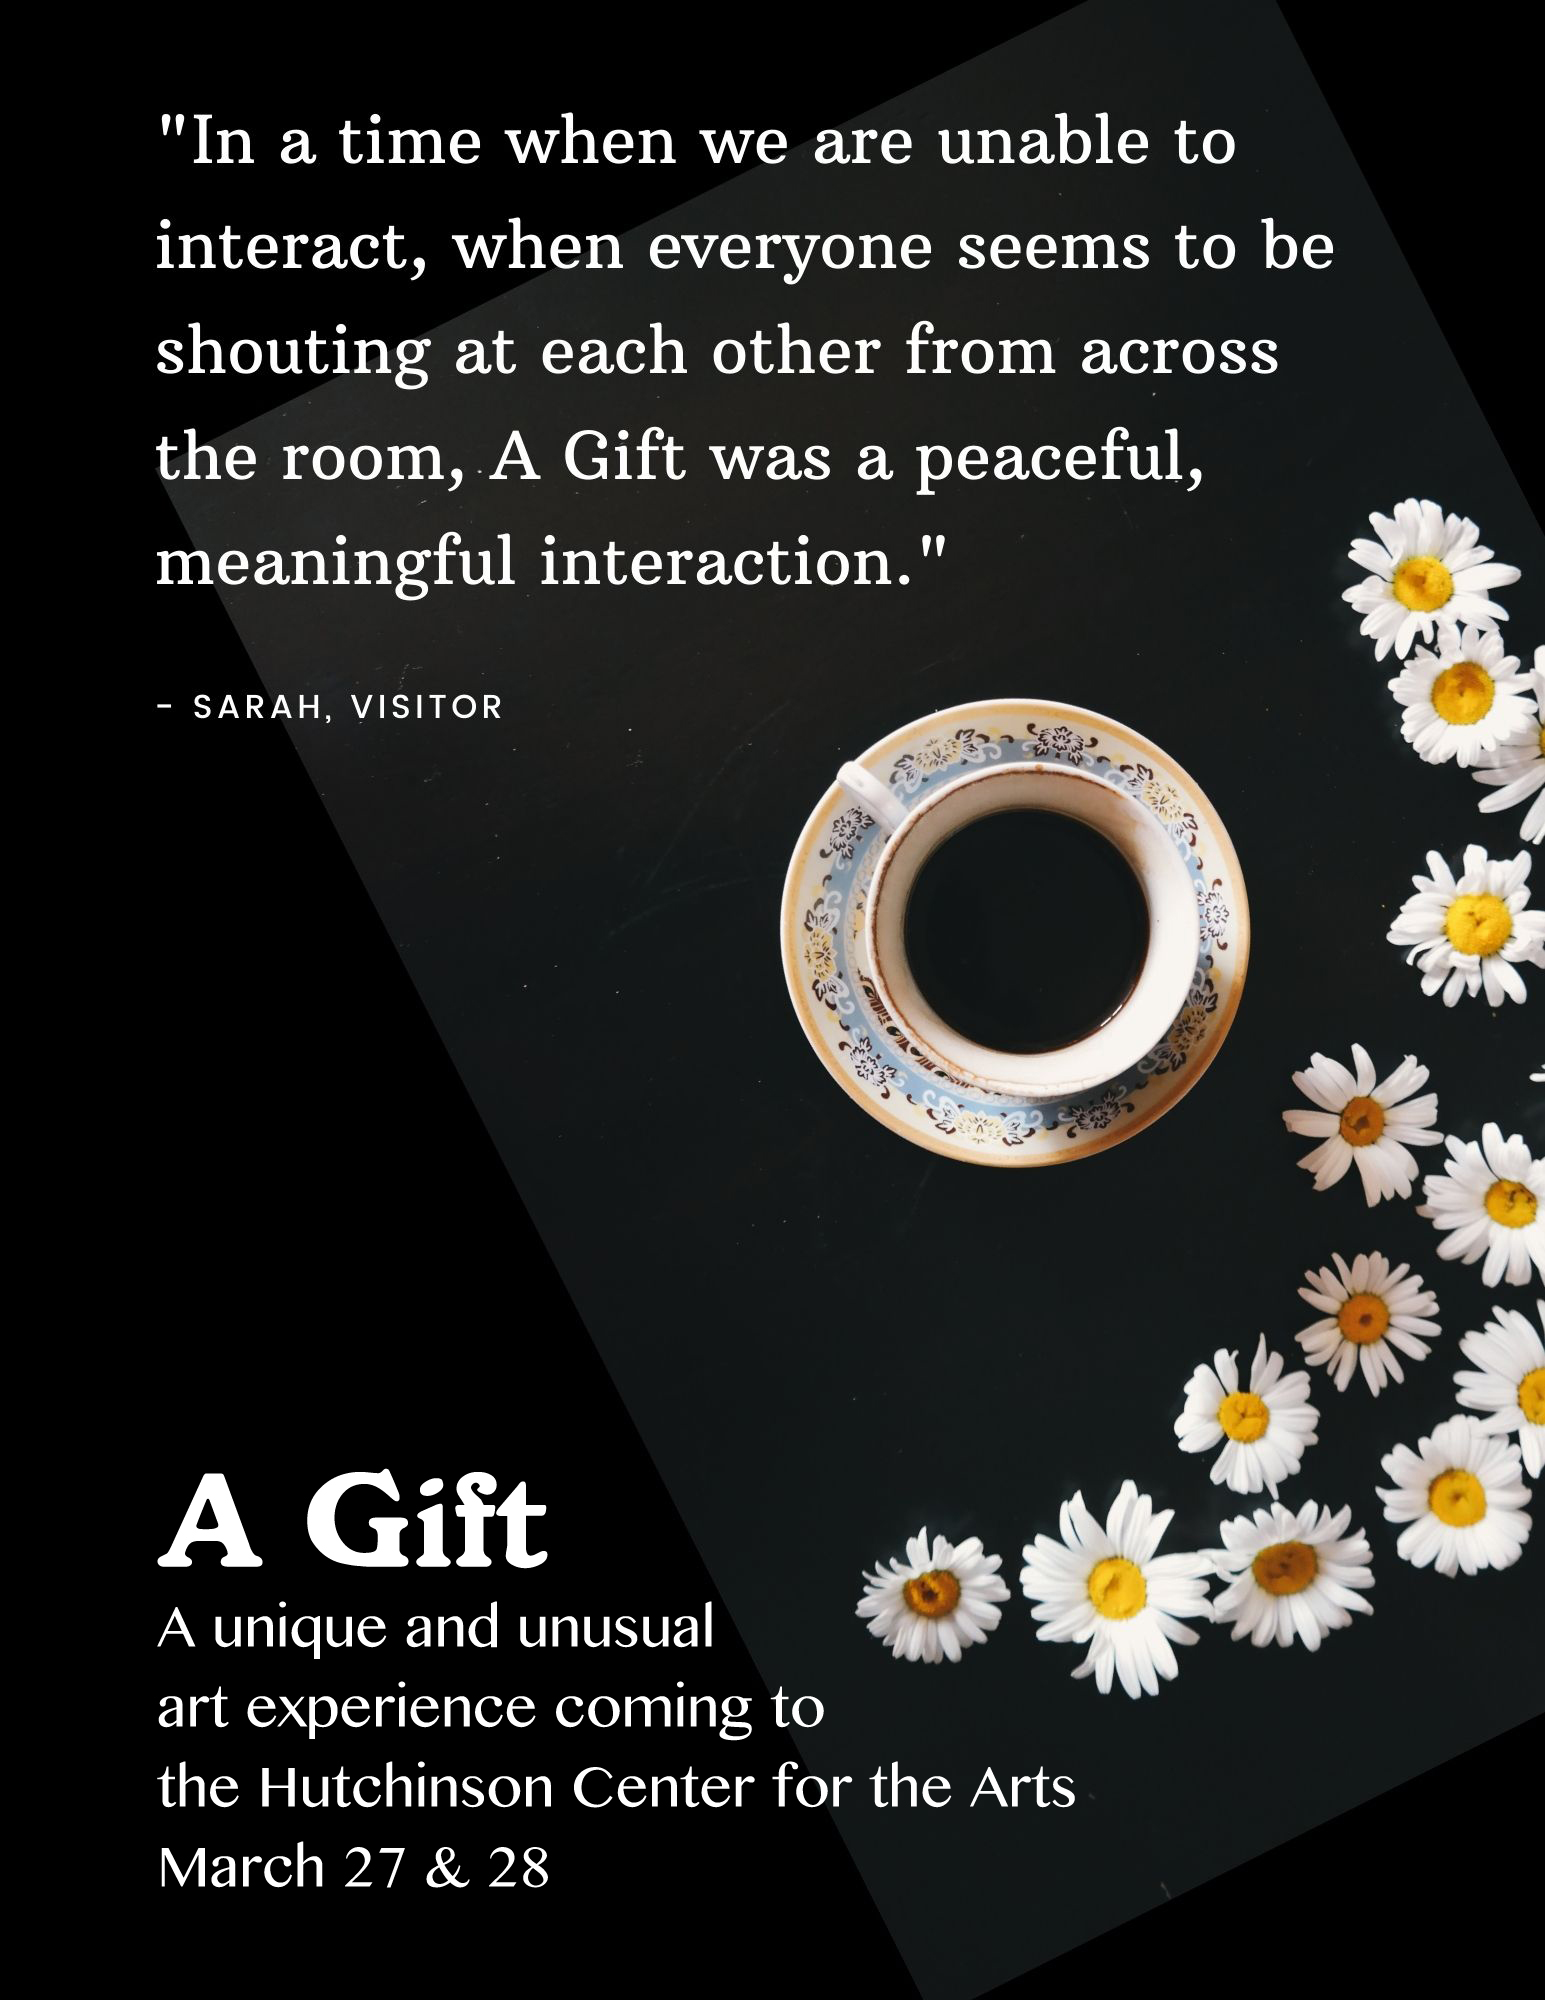 Black background and white text, there is also a photo of a ornate tea cup with a dark liquid in it and white daisy strewn around it. A Gift: A unique and unusual art experience coming to the Hutchinson Center for the Arts March 27 & 28.